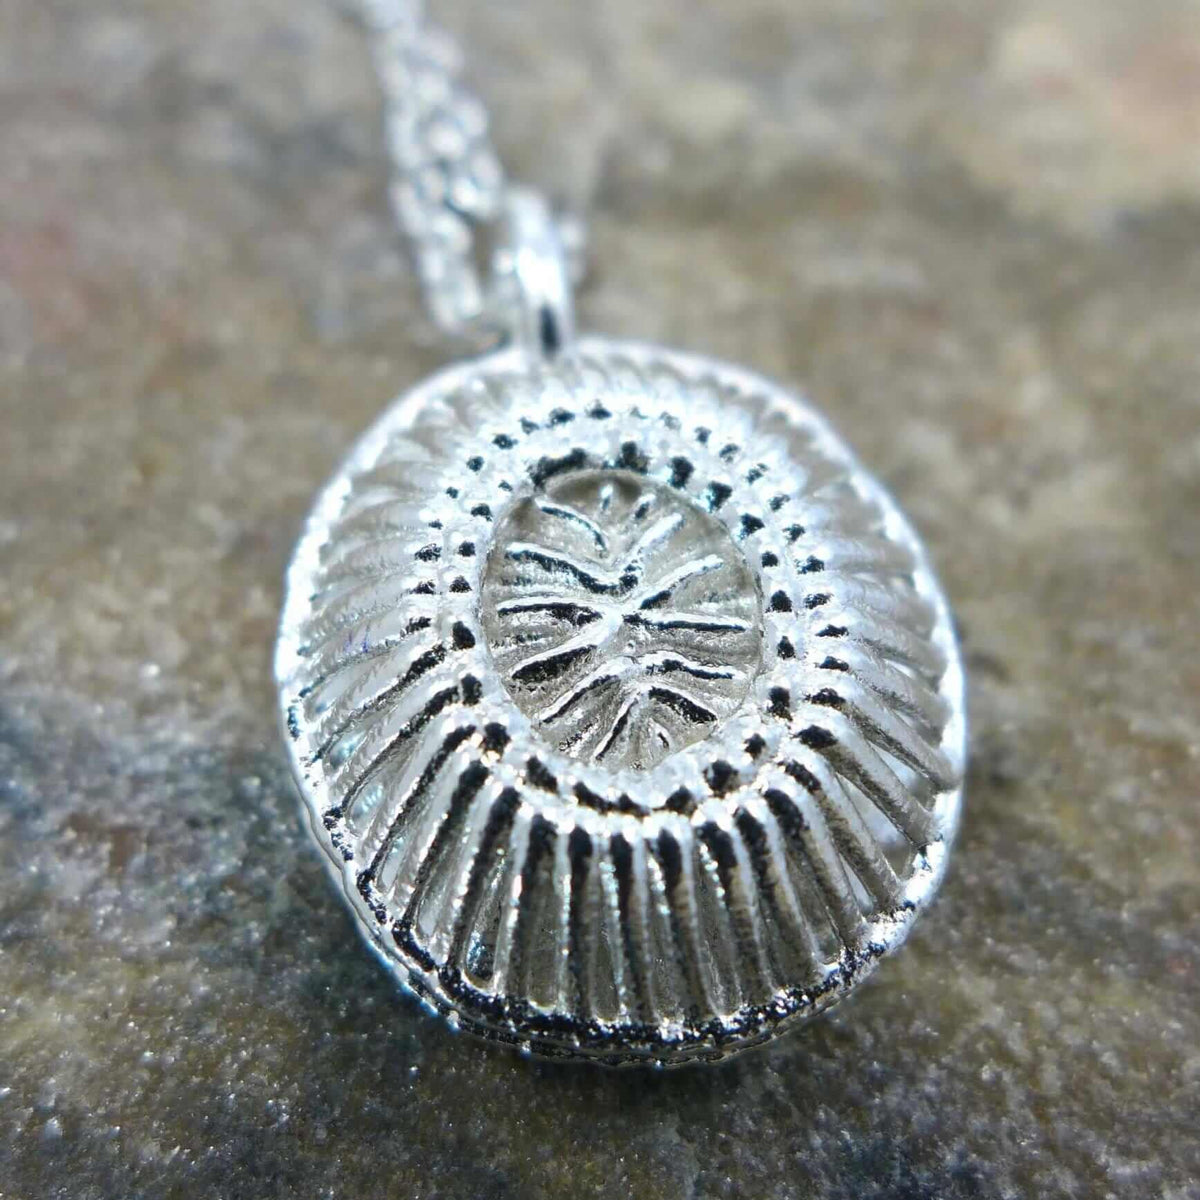 Emiliana huxleyi coccolithophore pendant in unpolished silver